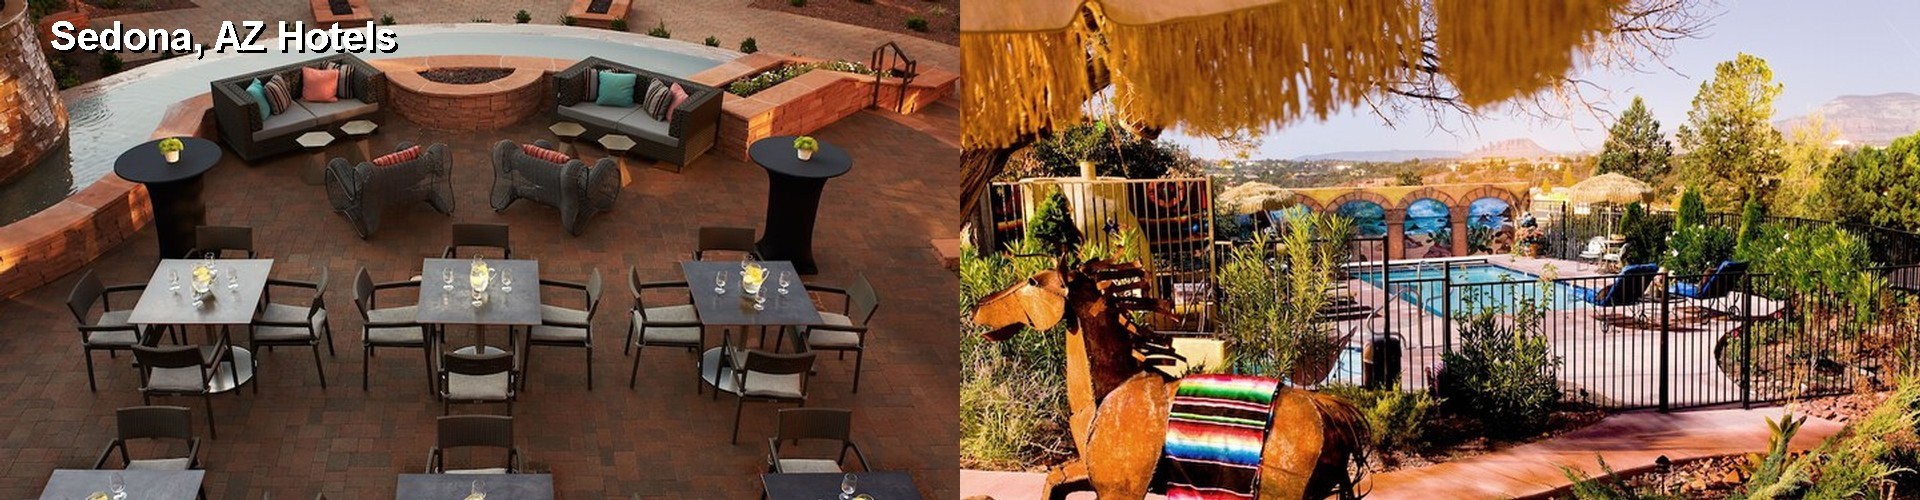 5 Best Hotels near Sedona, AZ